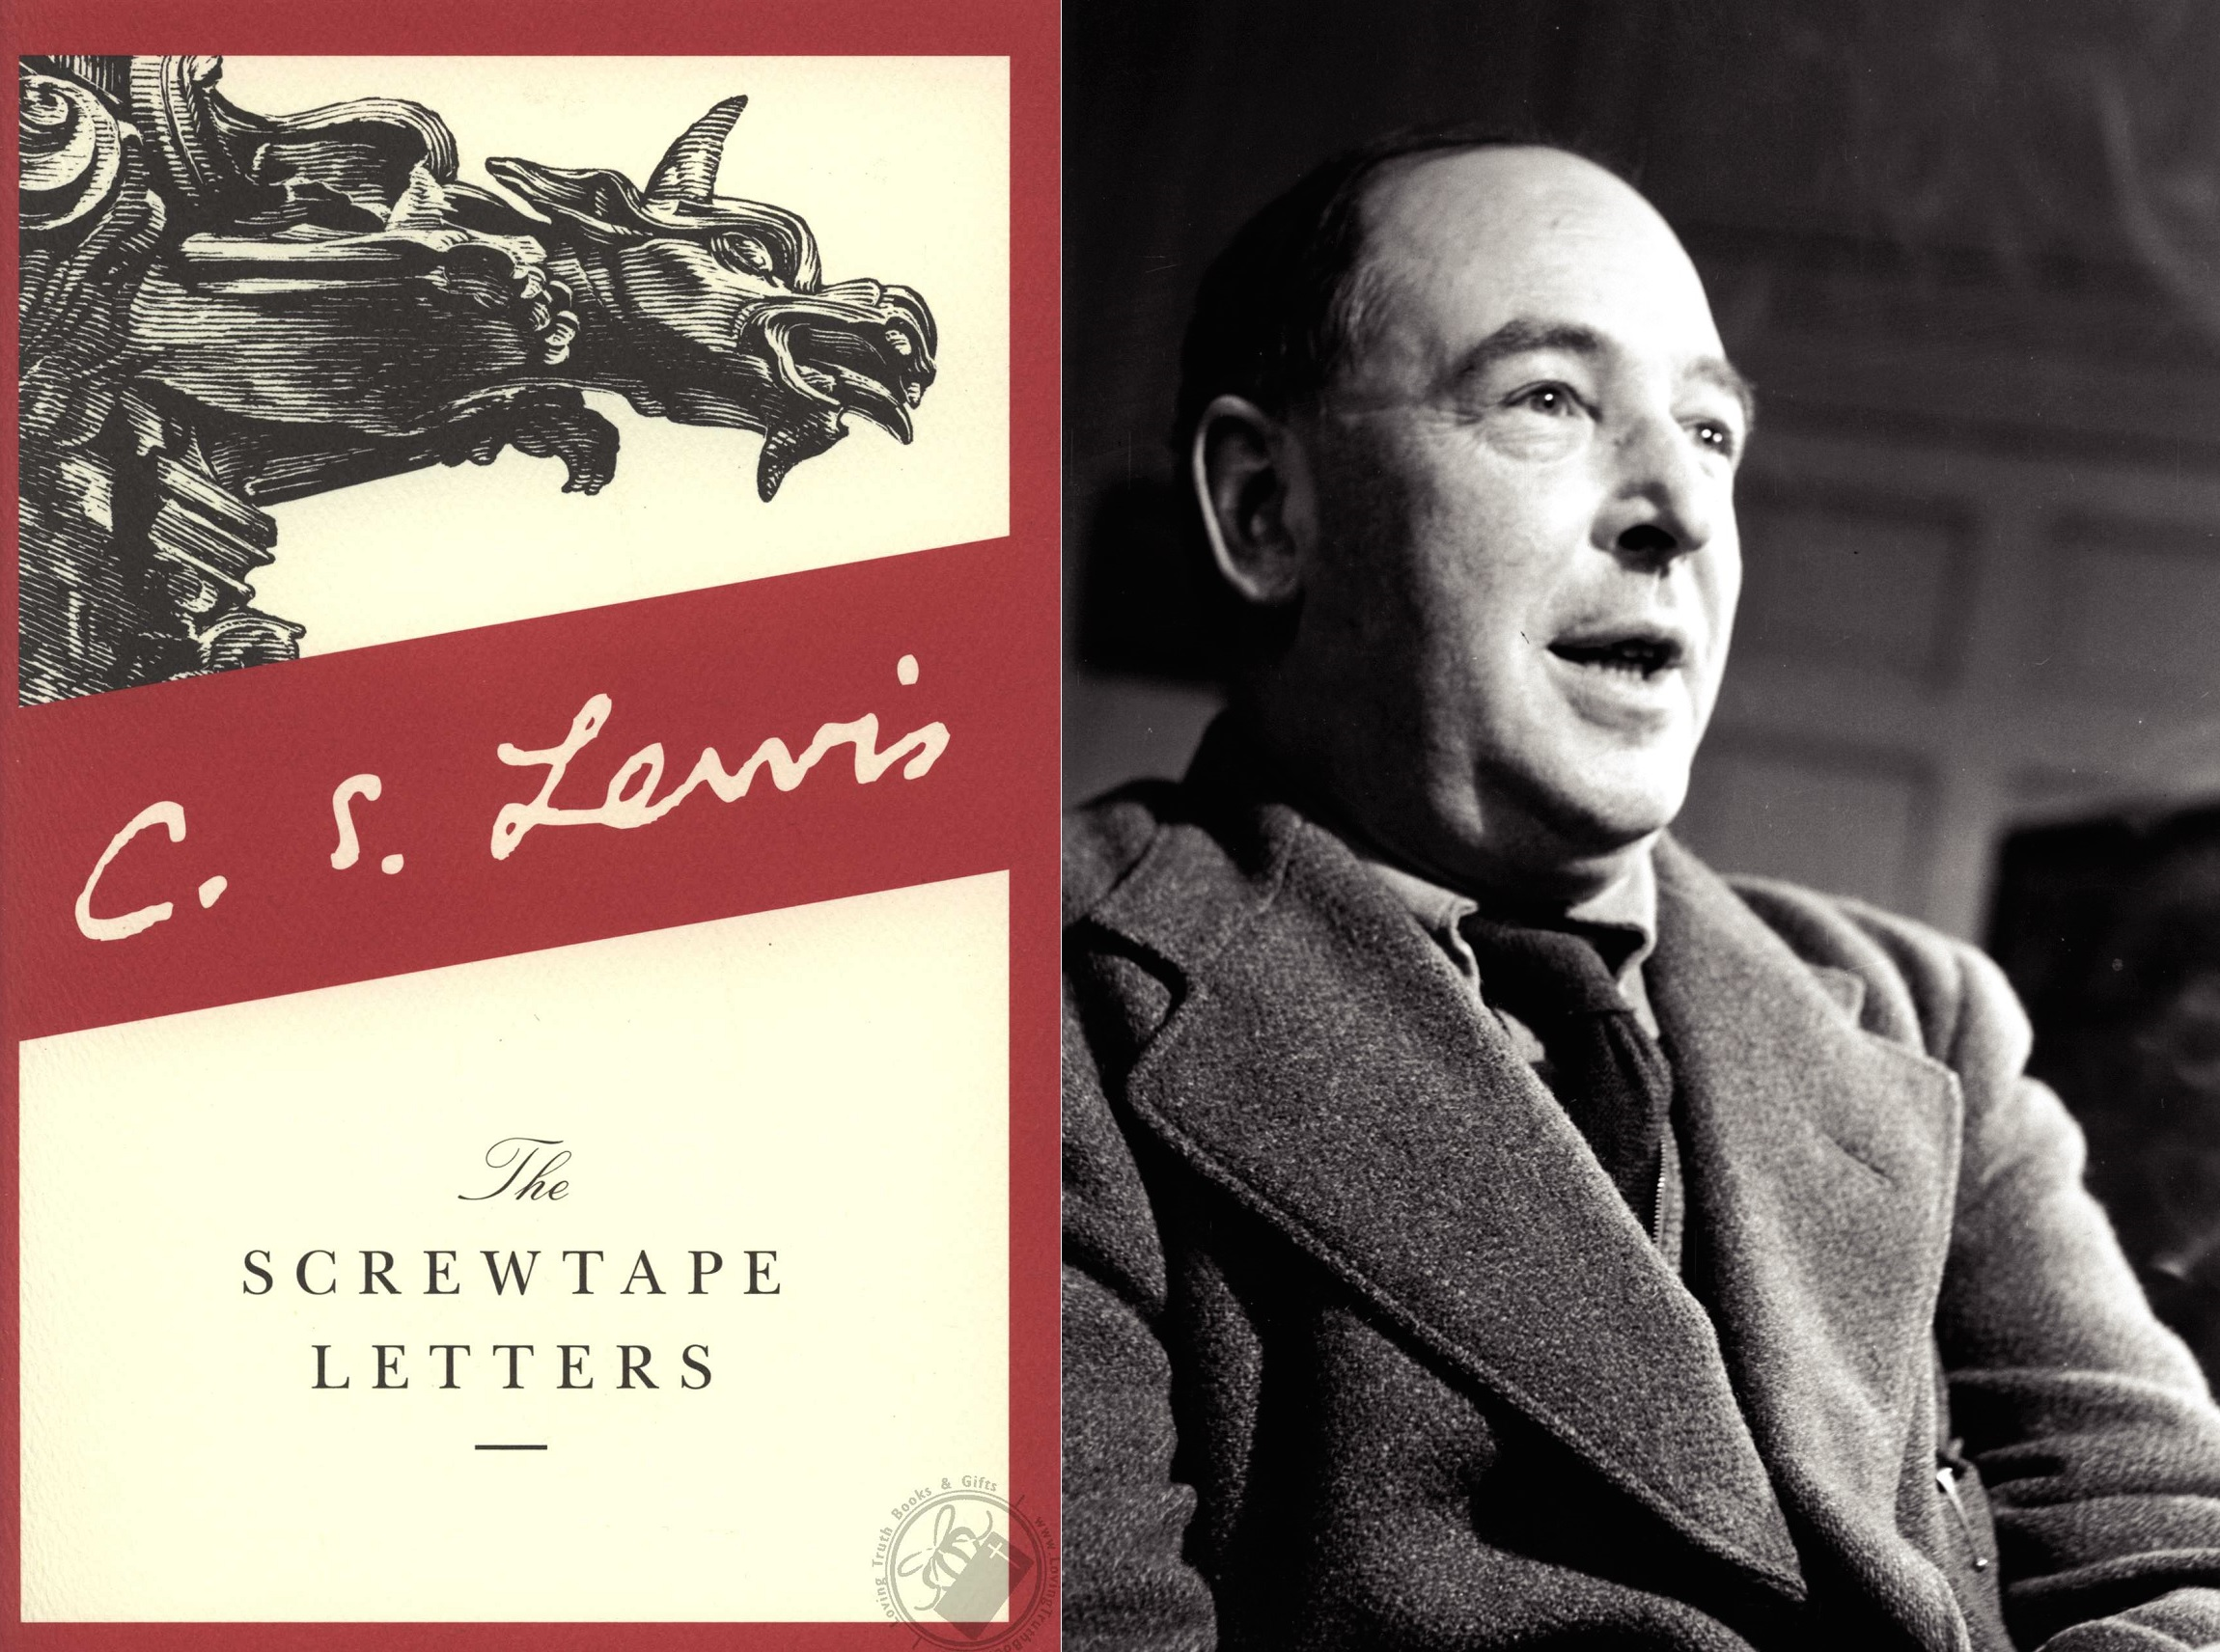 cs lewis essay The last published article by lewis before his death asked this question.